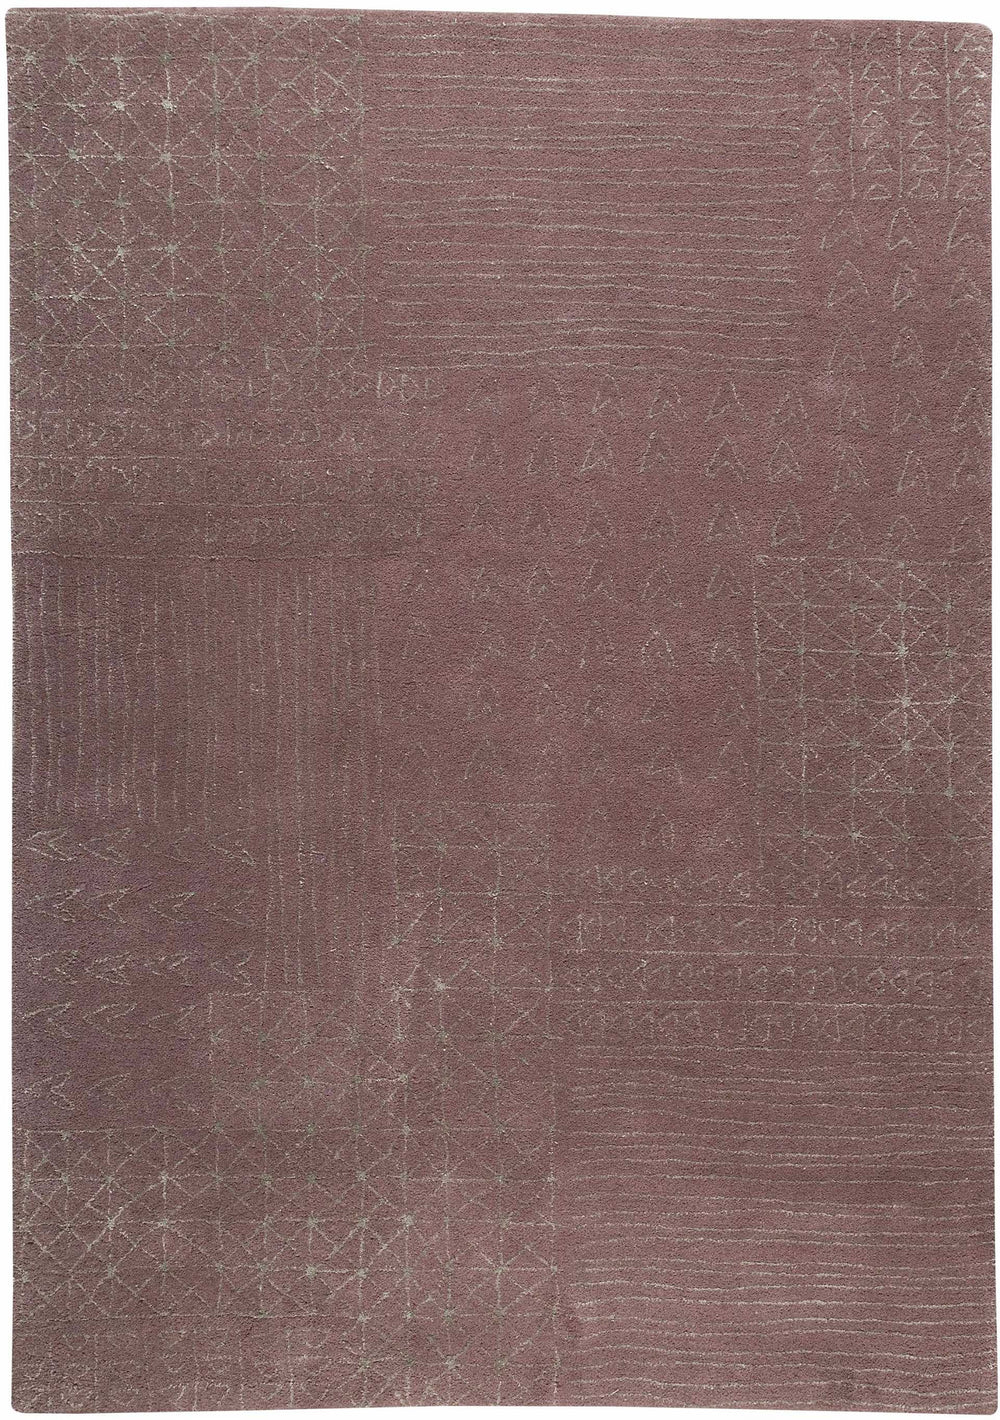 MAT The Basics 13WVT Tripoli Area Rug